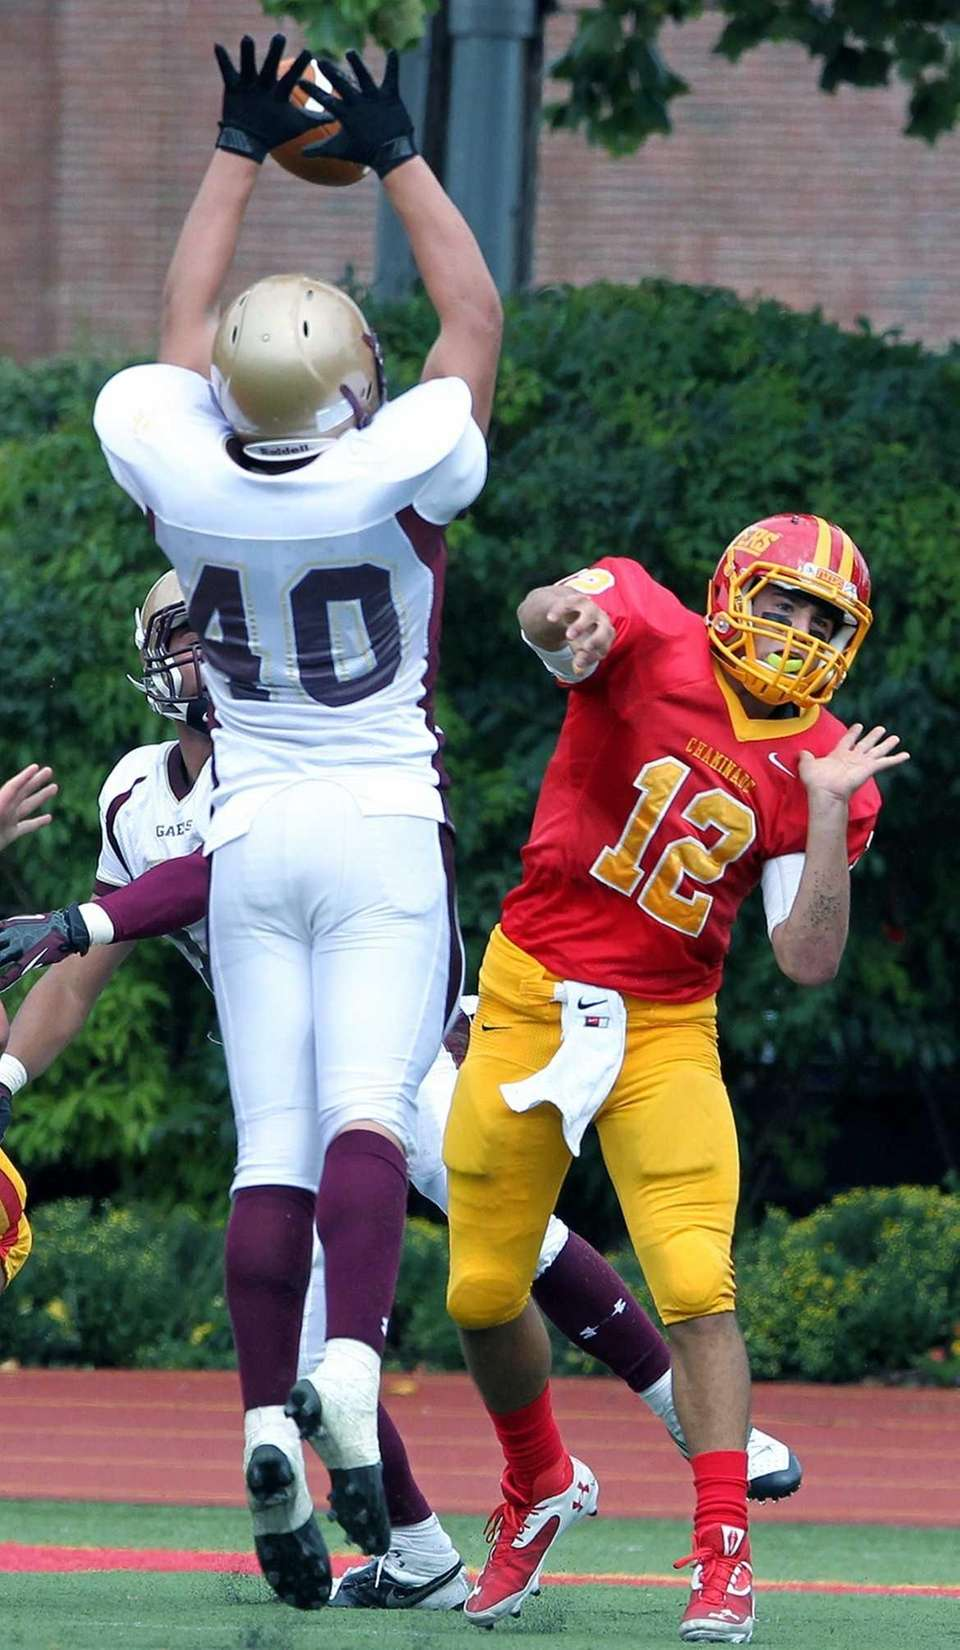 An Iona defender deflects a pass by Chaminade's